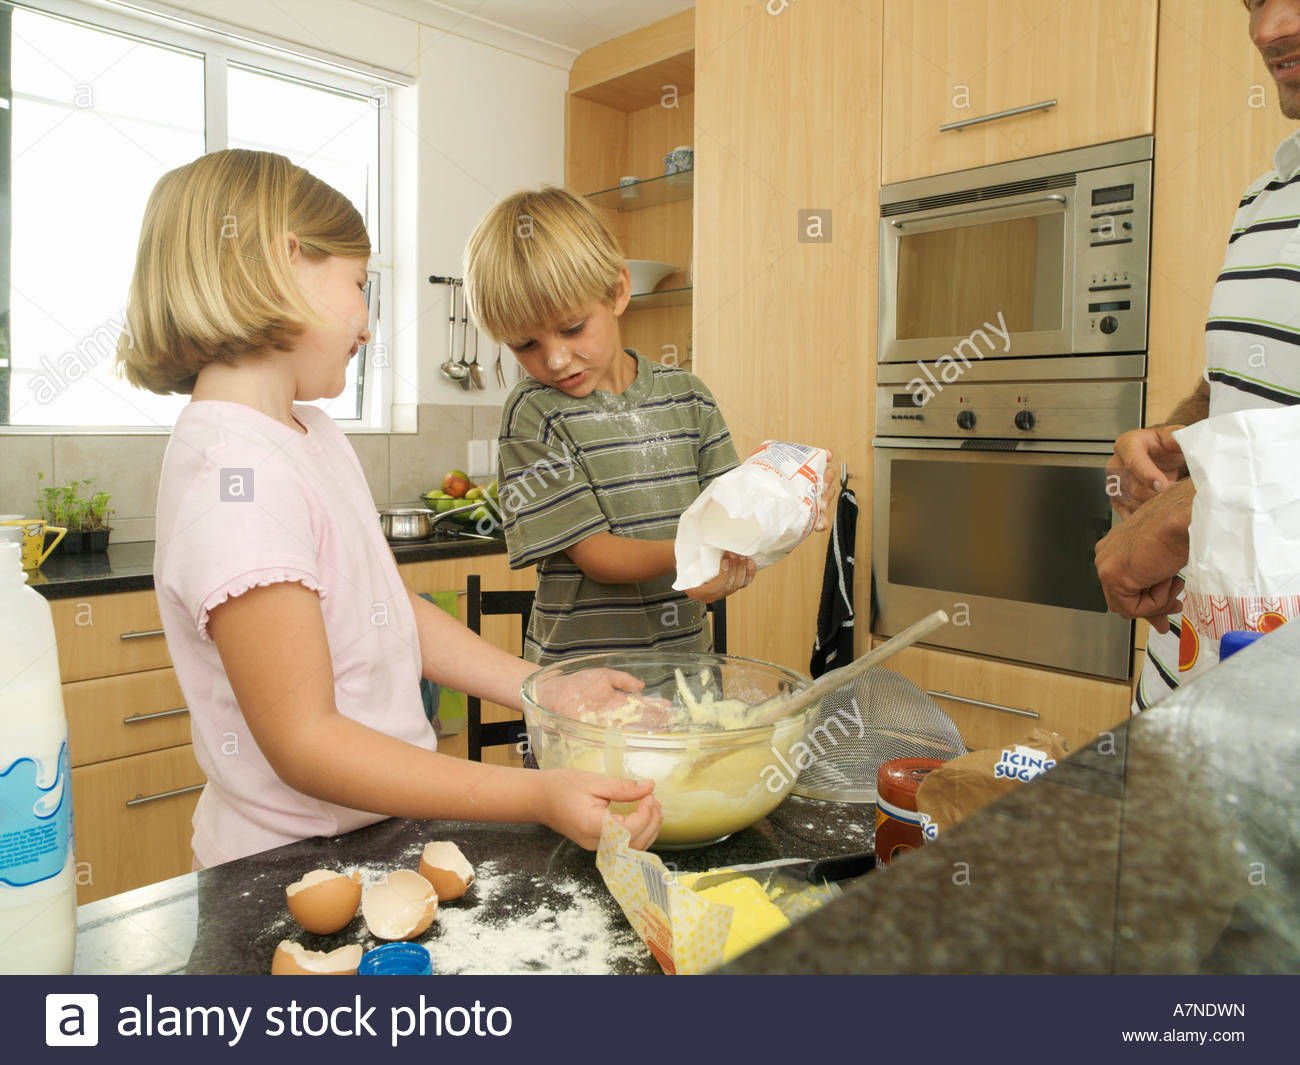 Boy 5 7 and girl 6 8 making cake mix in kitchen boy pouring flour into bowl father watching - Stock Image